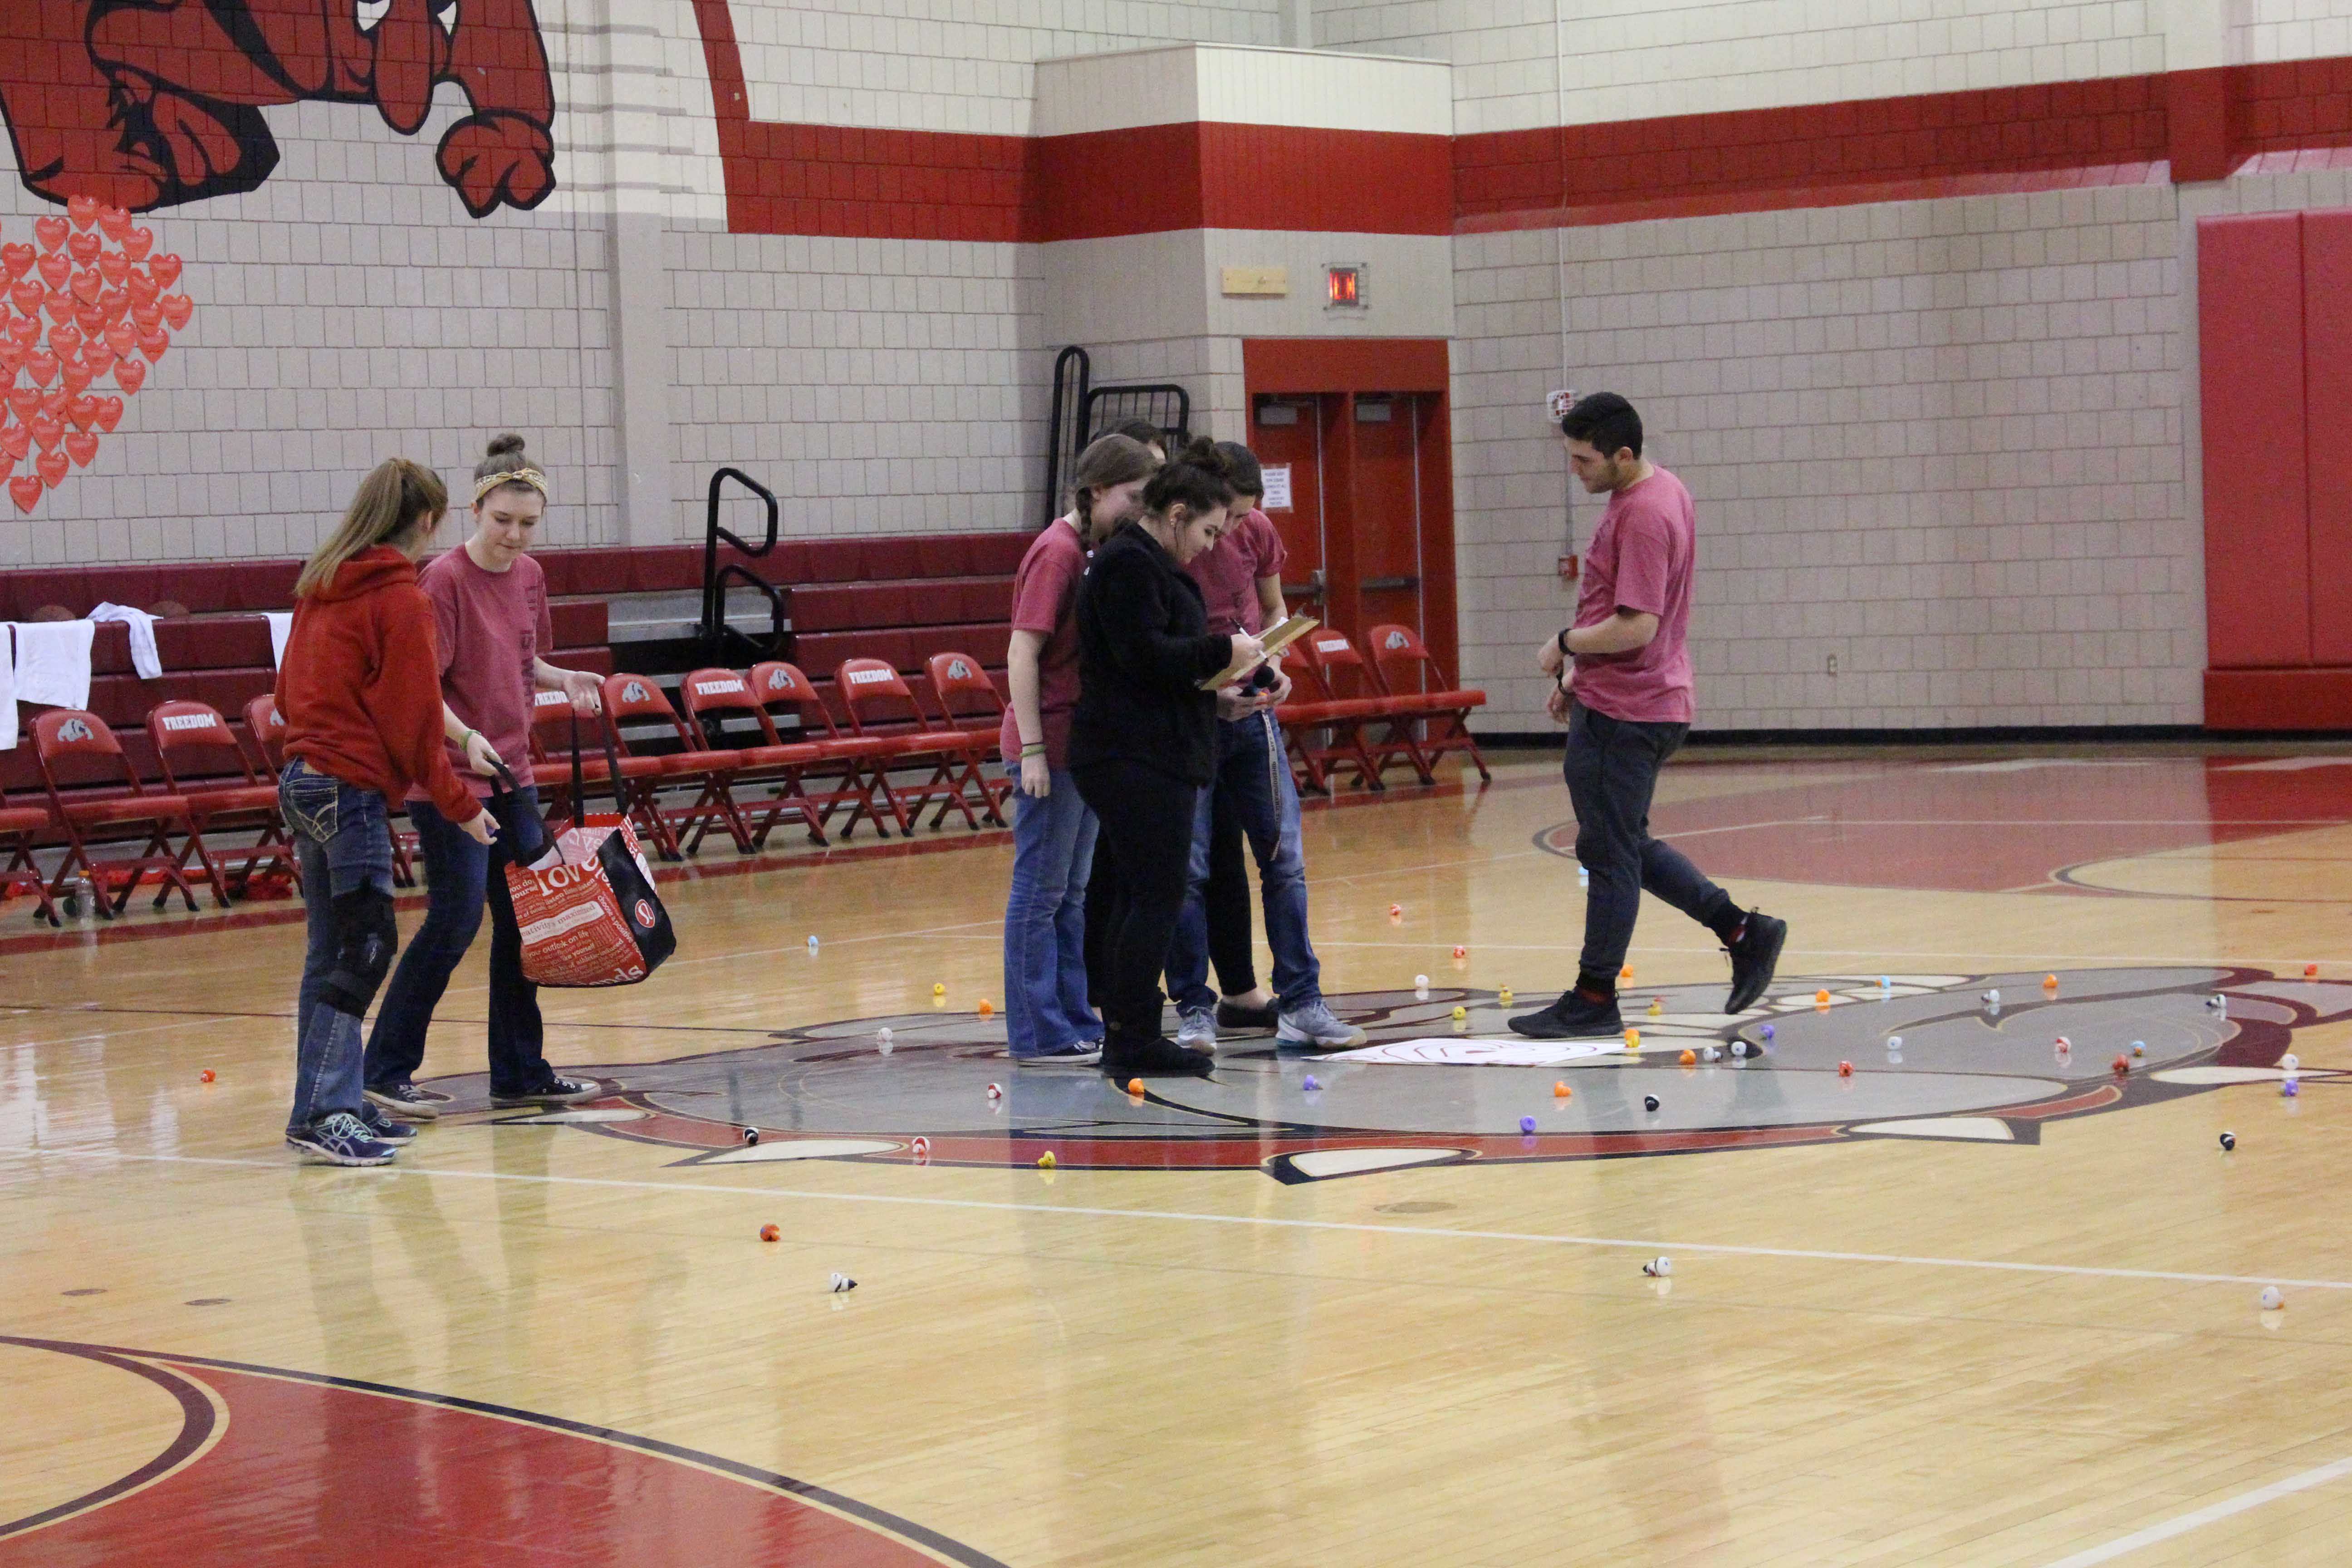 """NHS members collect the ducks scattered across the court after the """"chuck-a-duck"""" contest."""